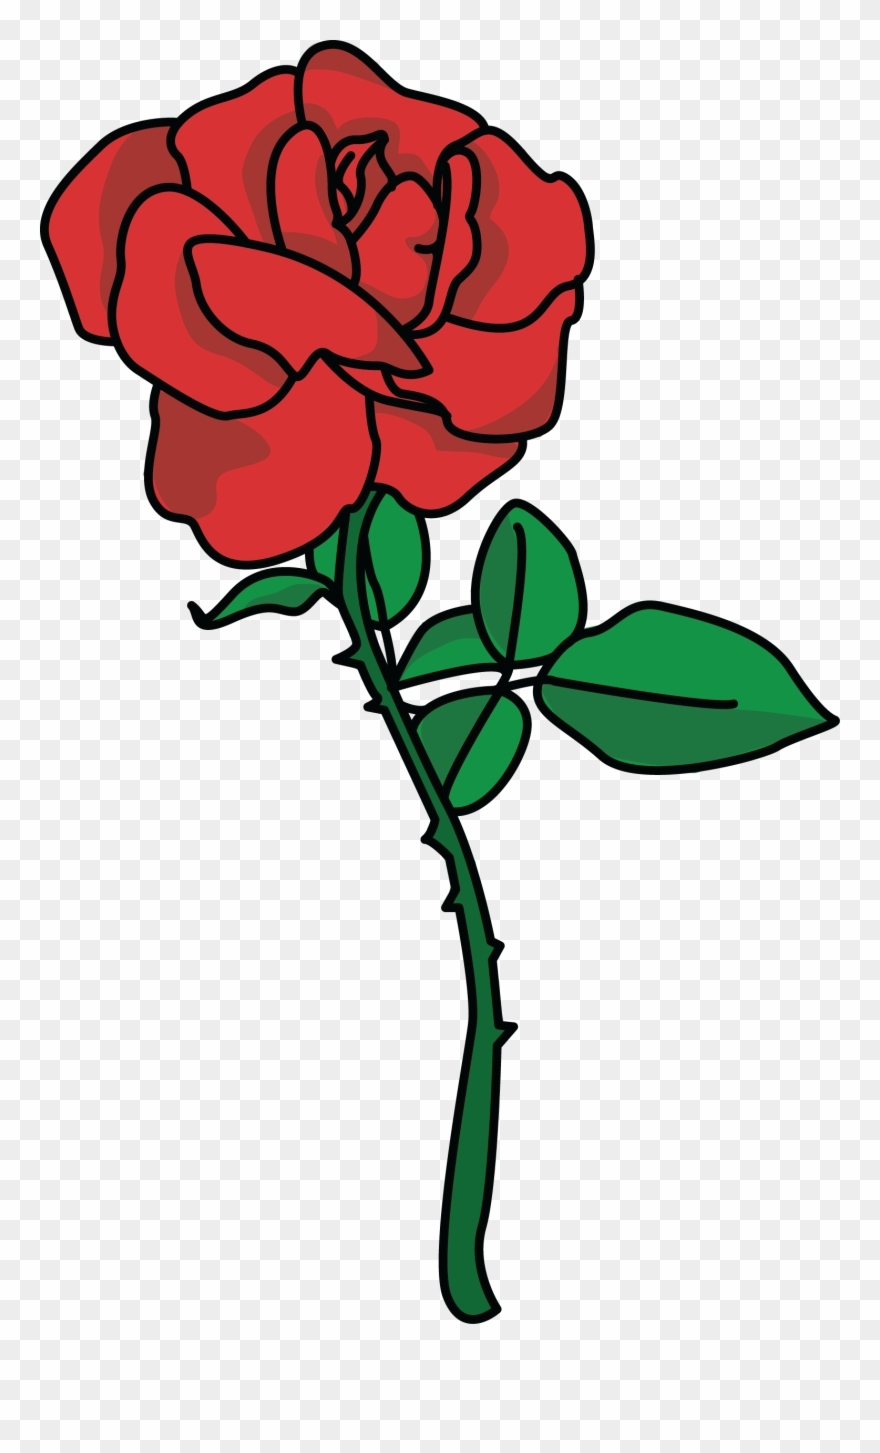 Clipart roses high resolution. Large pink rose heart